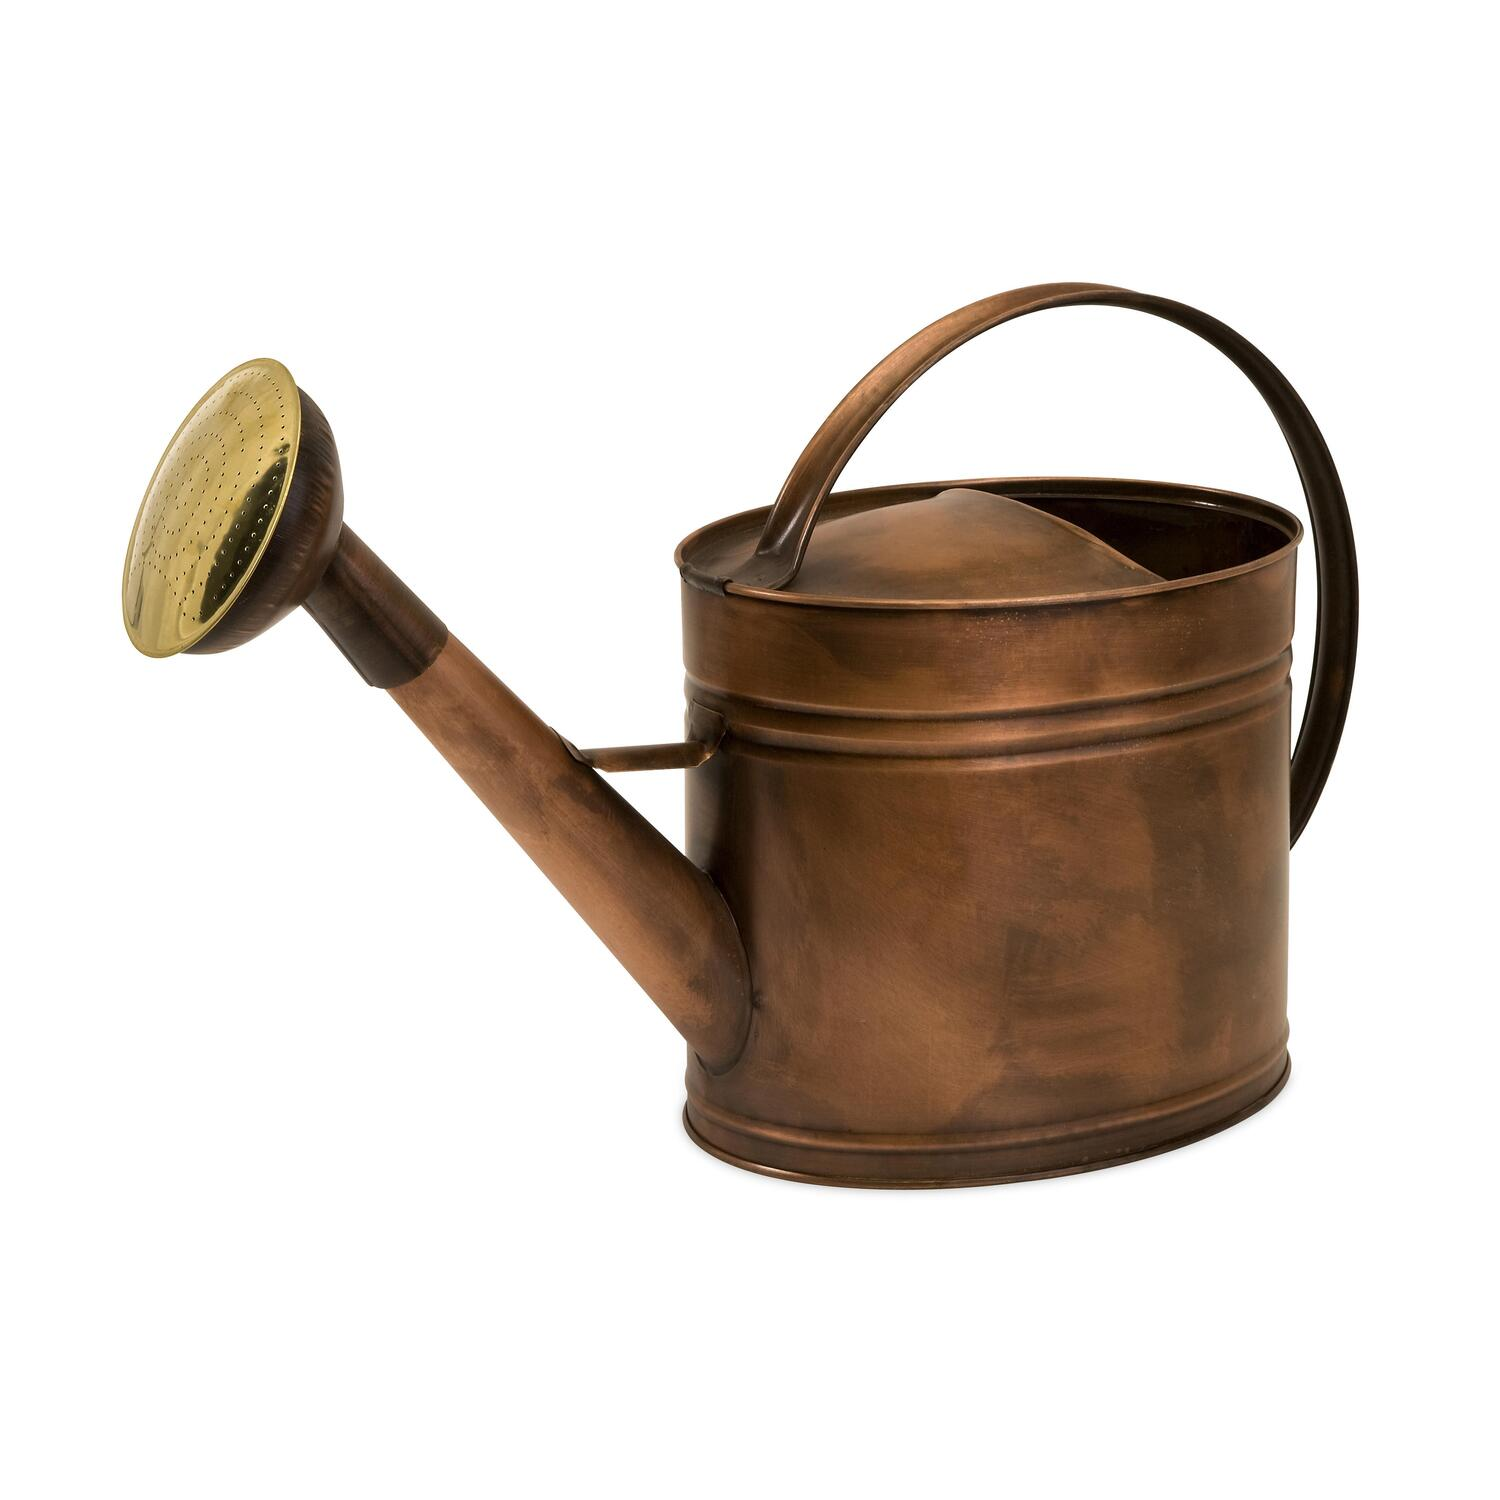 Imak tauba large oval copper watering can by oj commerce 44088 - Sprinkling cans ...